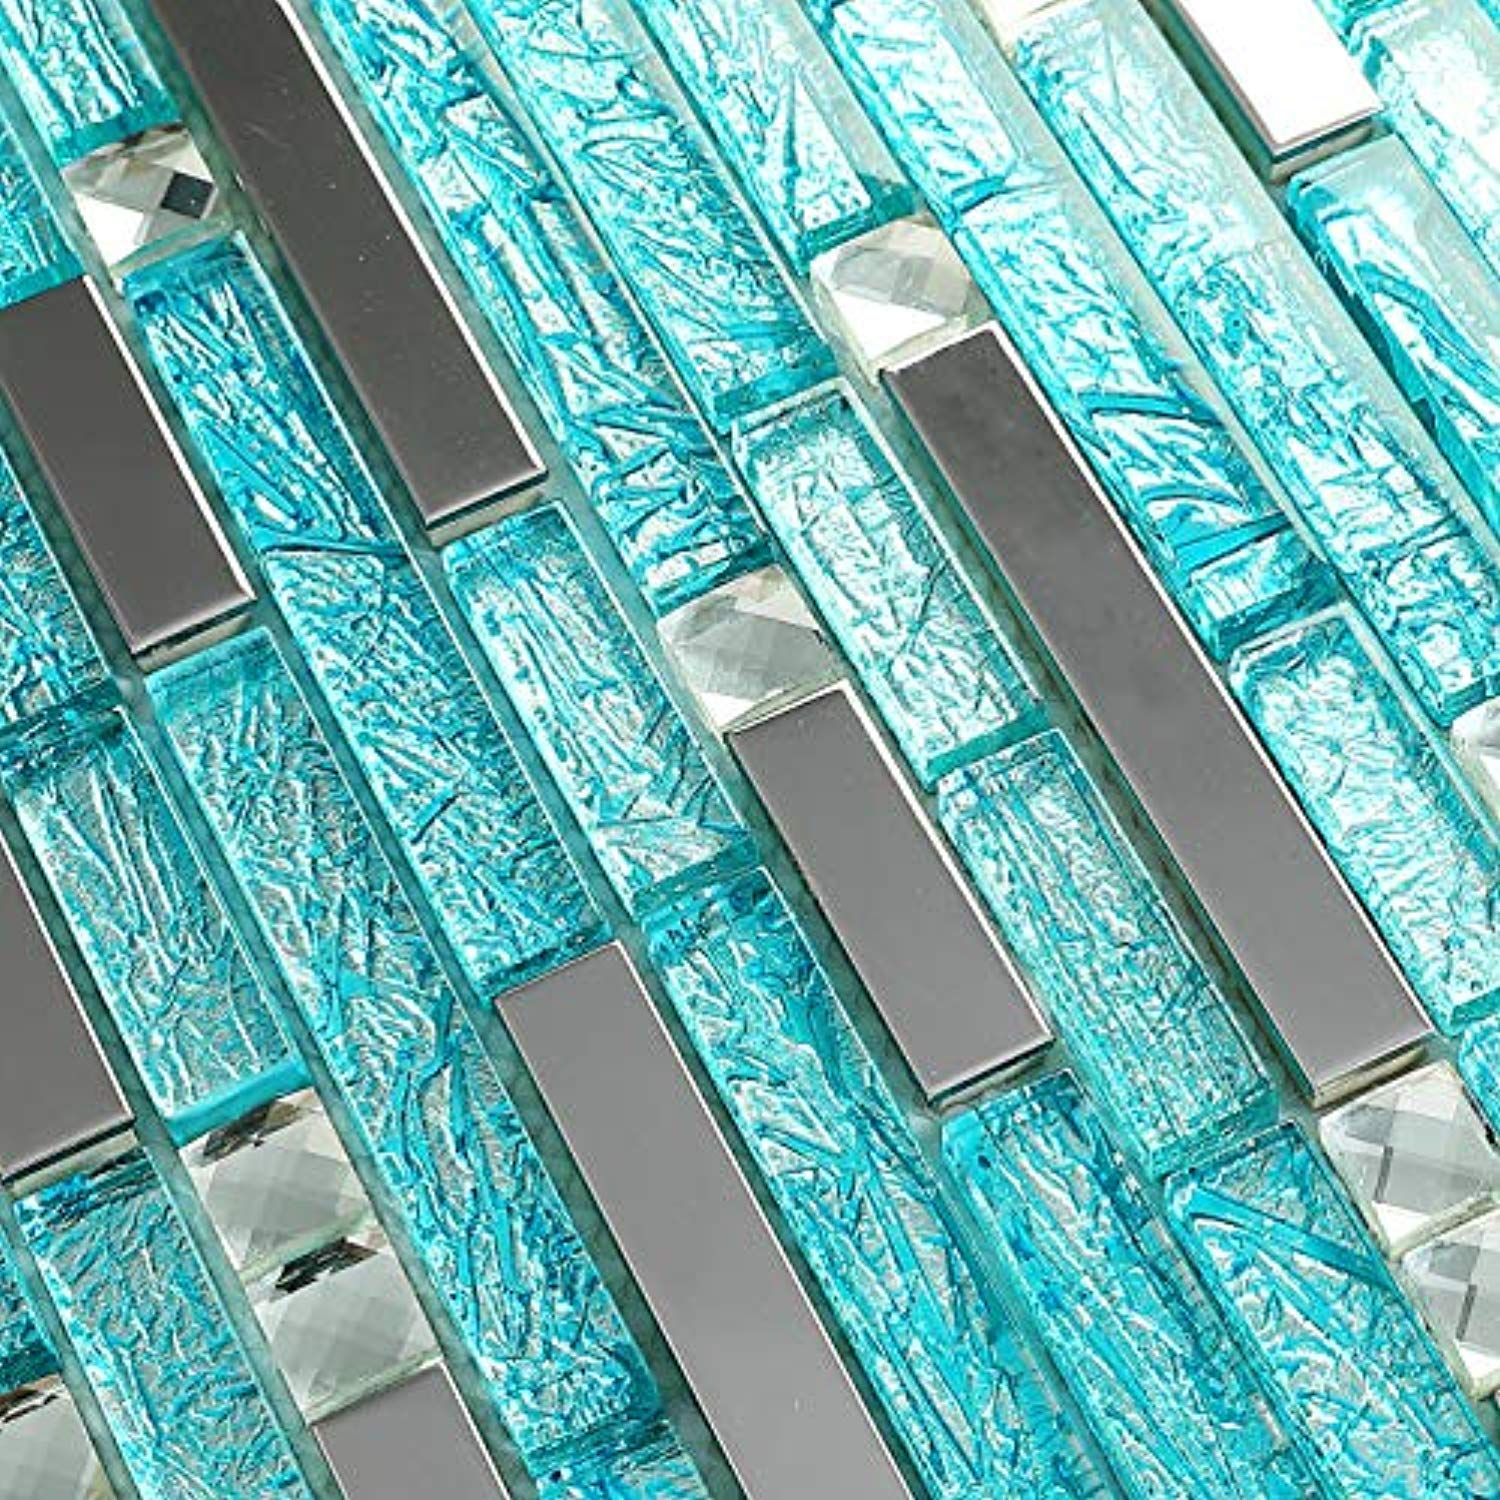 Hominter 5 Sheets Silver Stainless Steel Tile Cyan Blue Crystal Glass And Metal Wall Tiles For Kit Stainless Steel Tile Glass Backsplash Glass Tile Backsplash